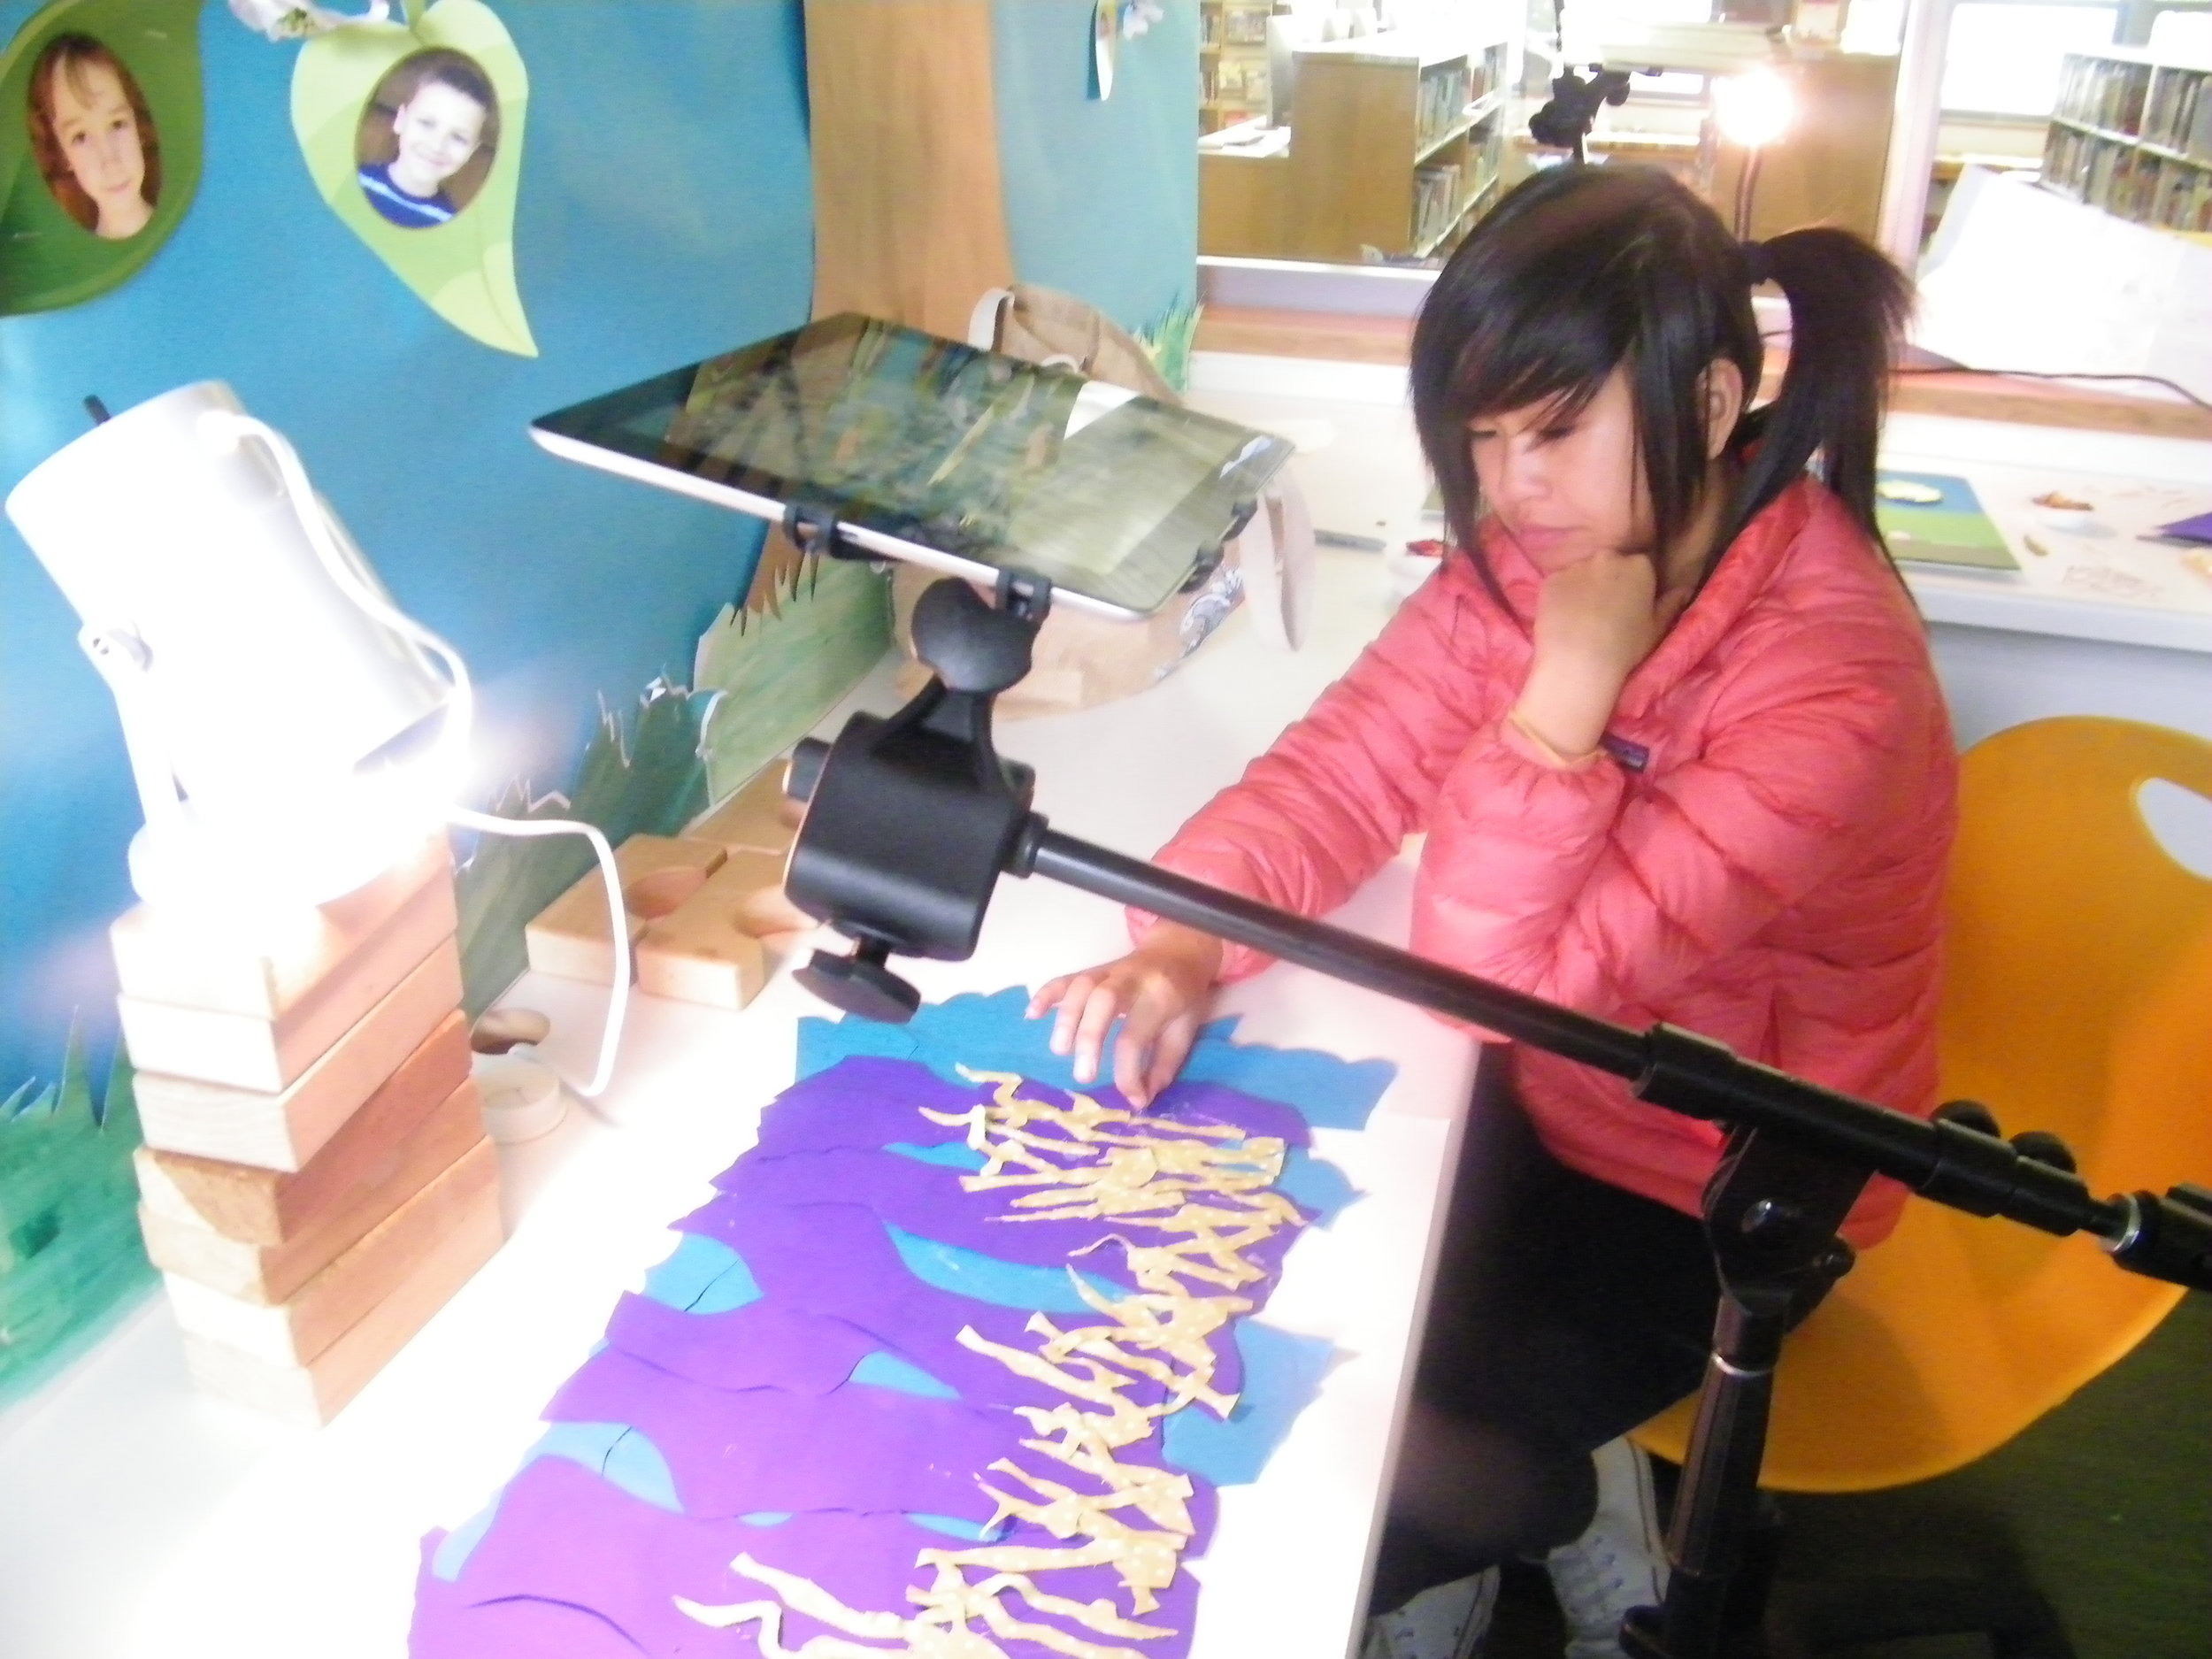 Students worked on stop-motion animation using iPads and iStopMotion software.